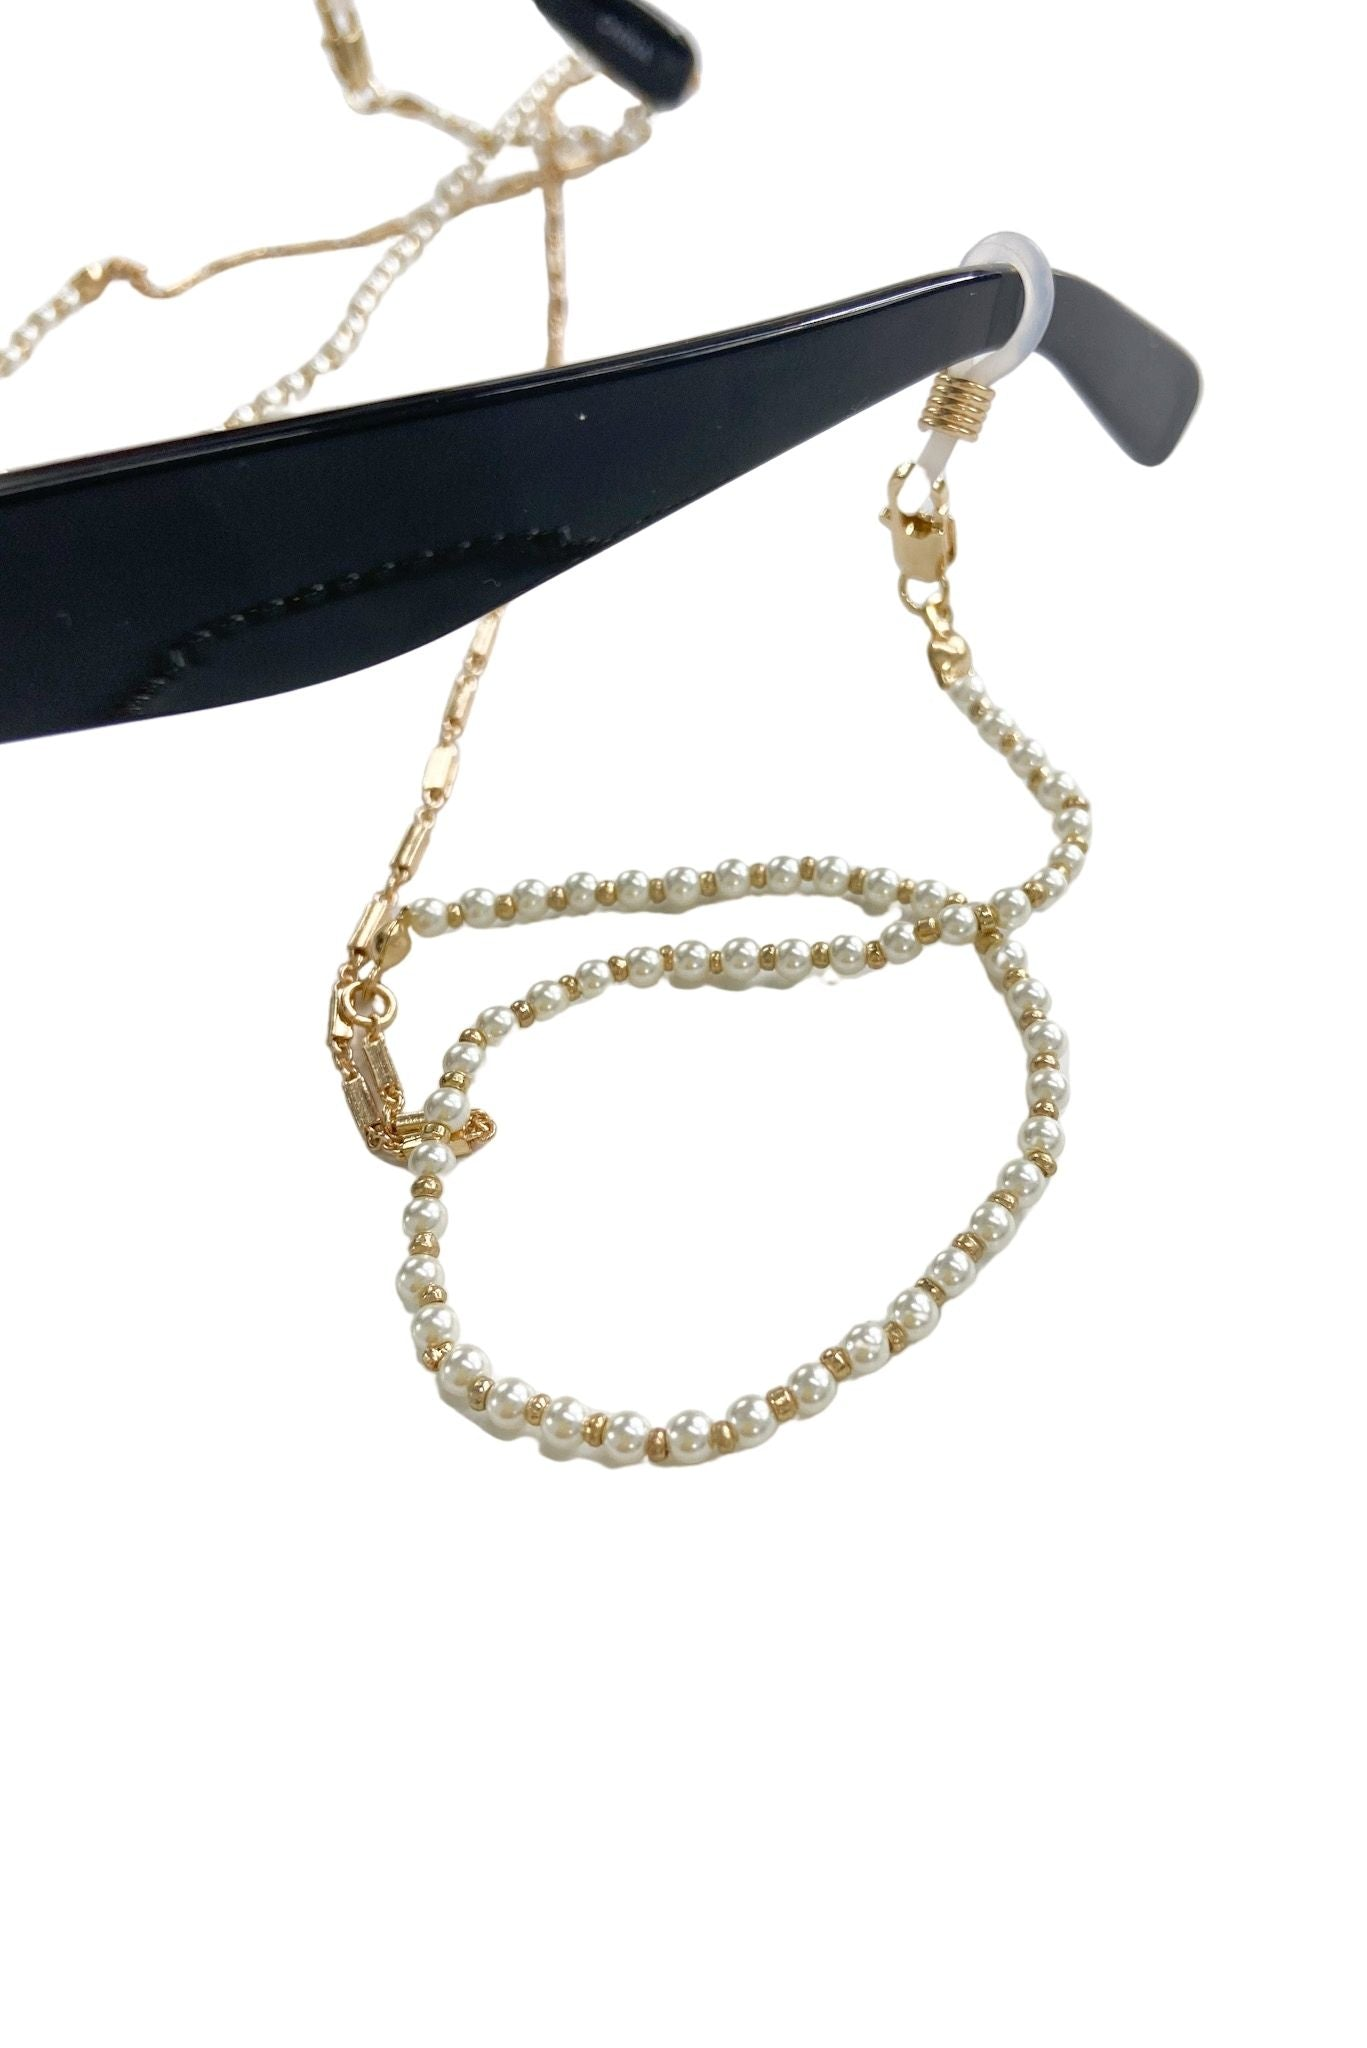 Pearl Beaded Sunglasses Chain